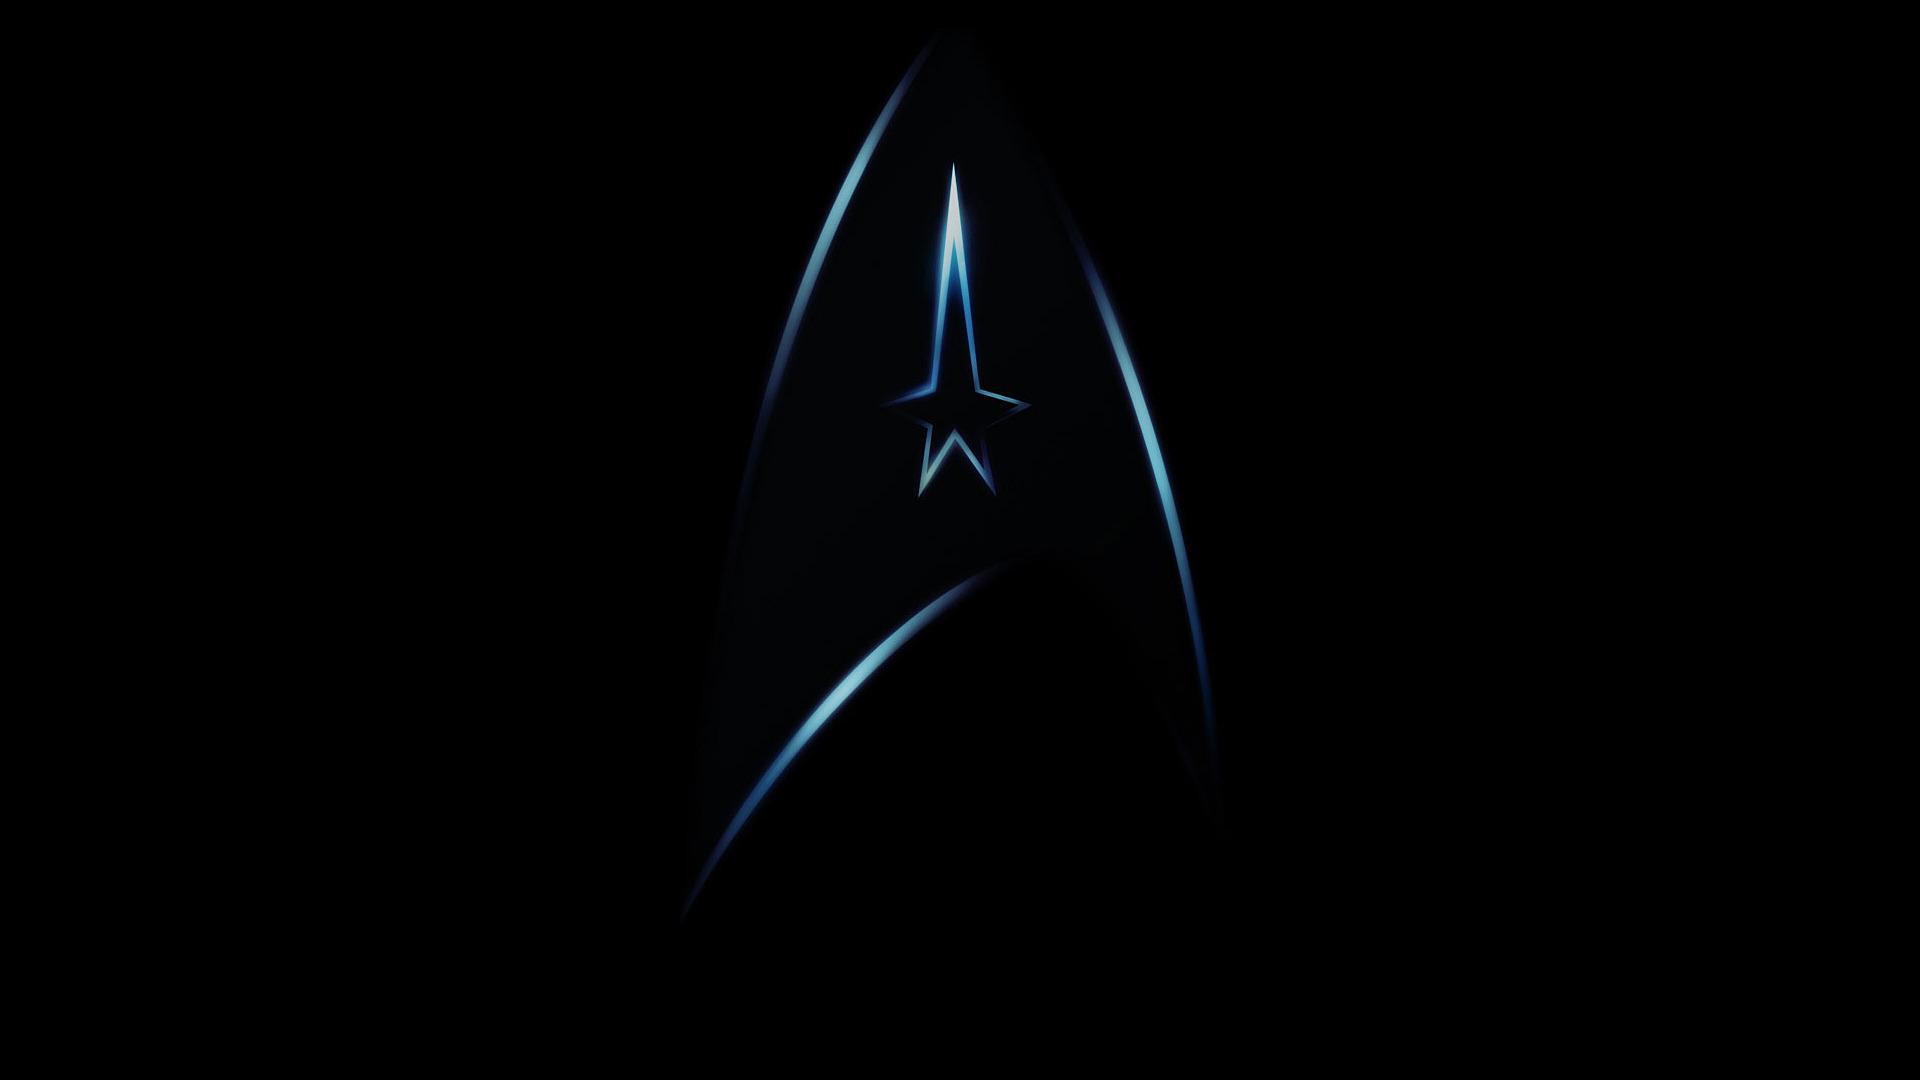 Star trek coming back to television d20crit star trek header biocorpaavc Choice Image